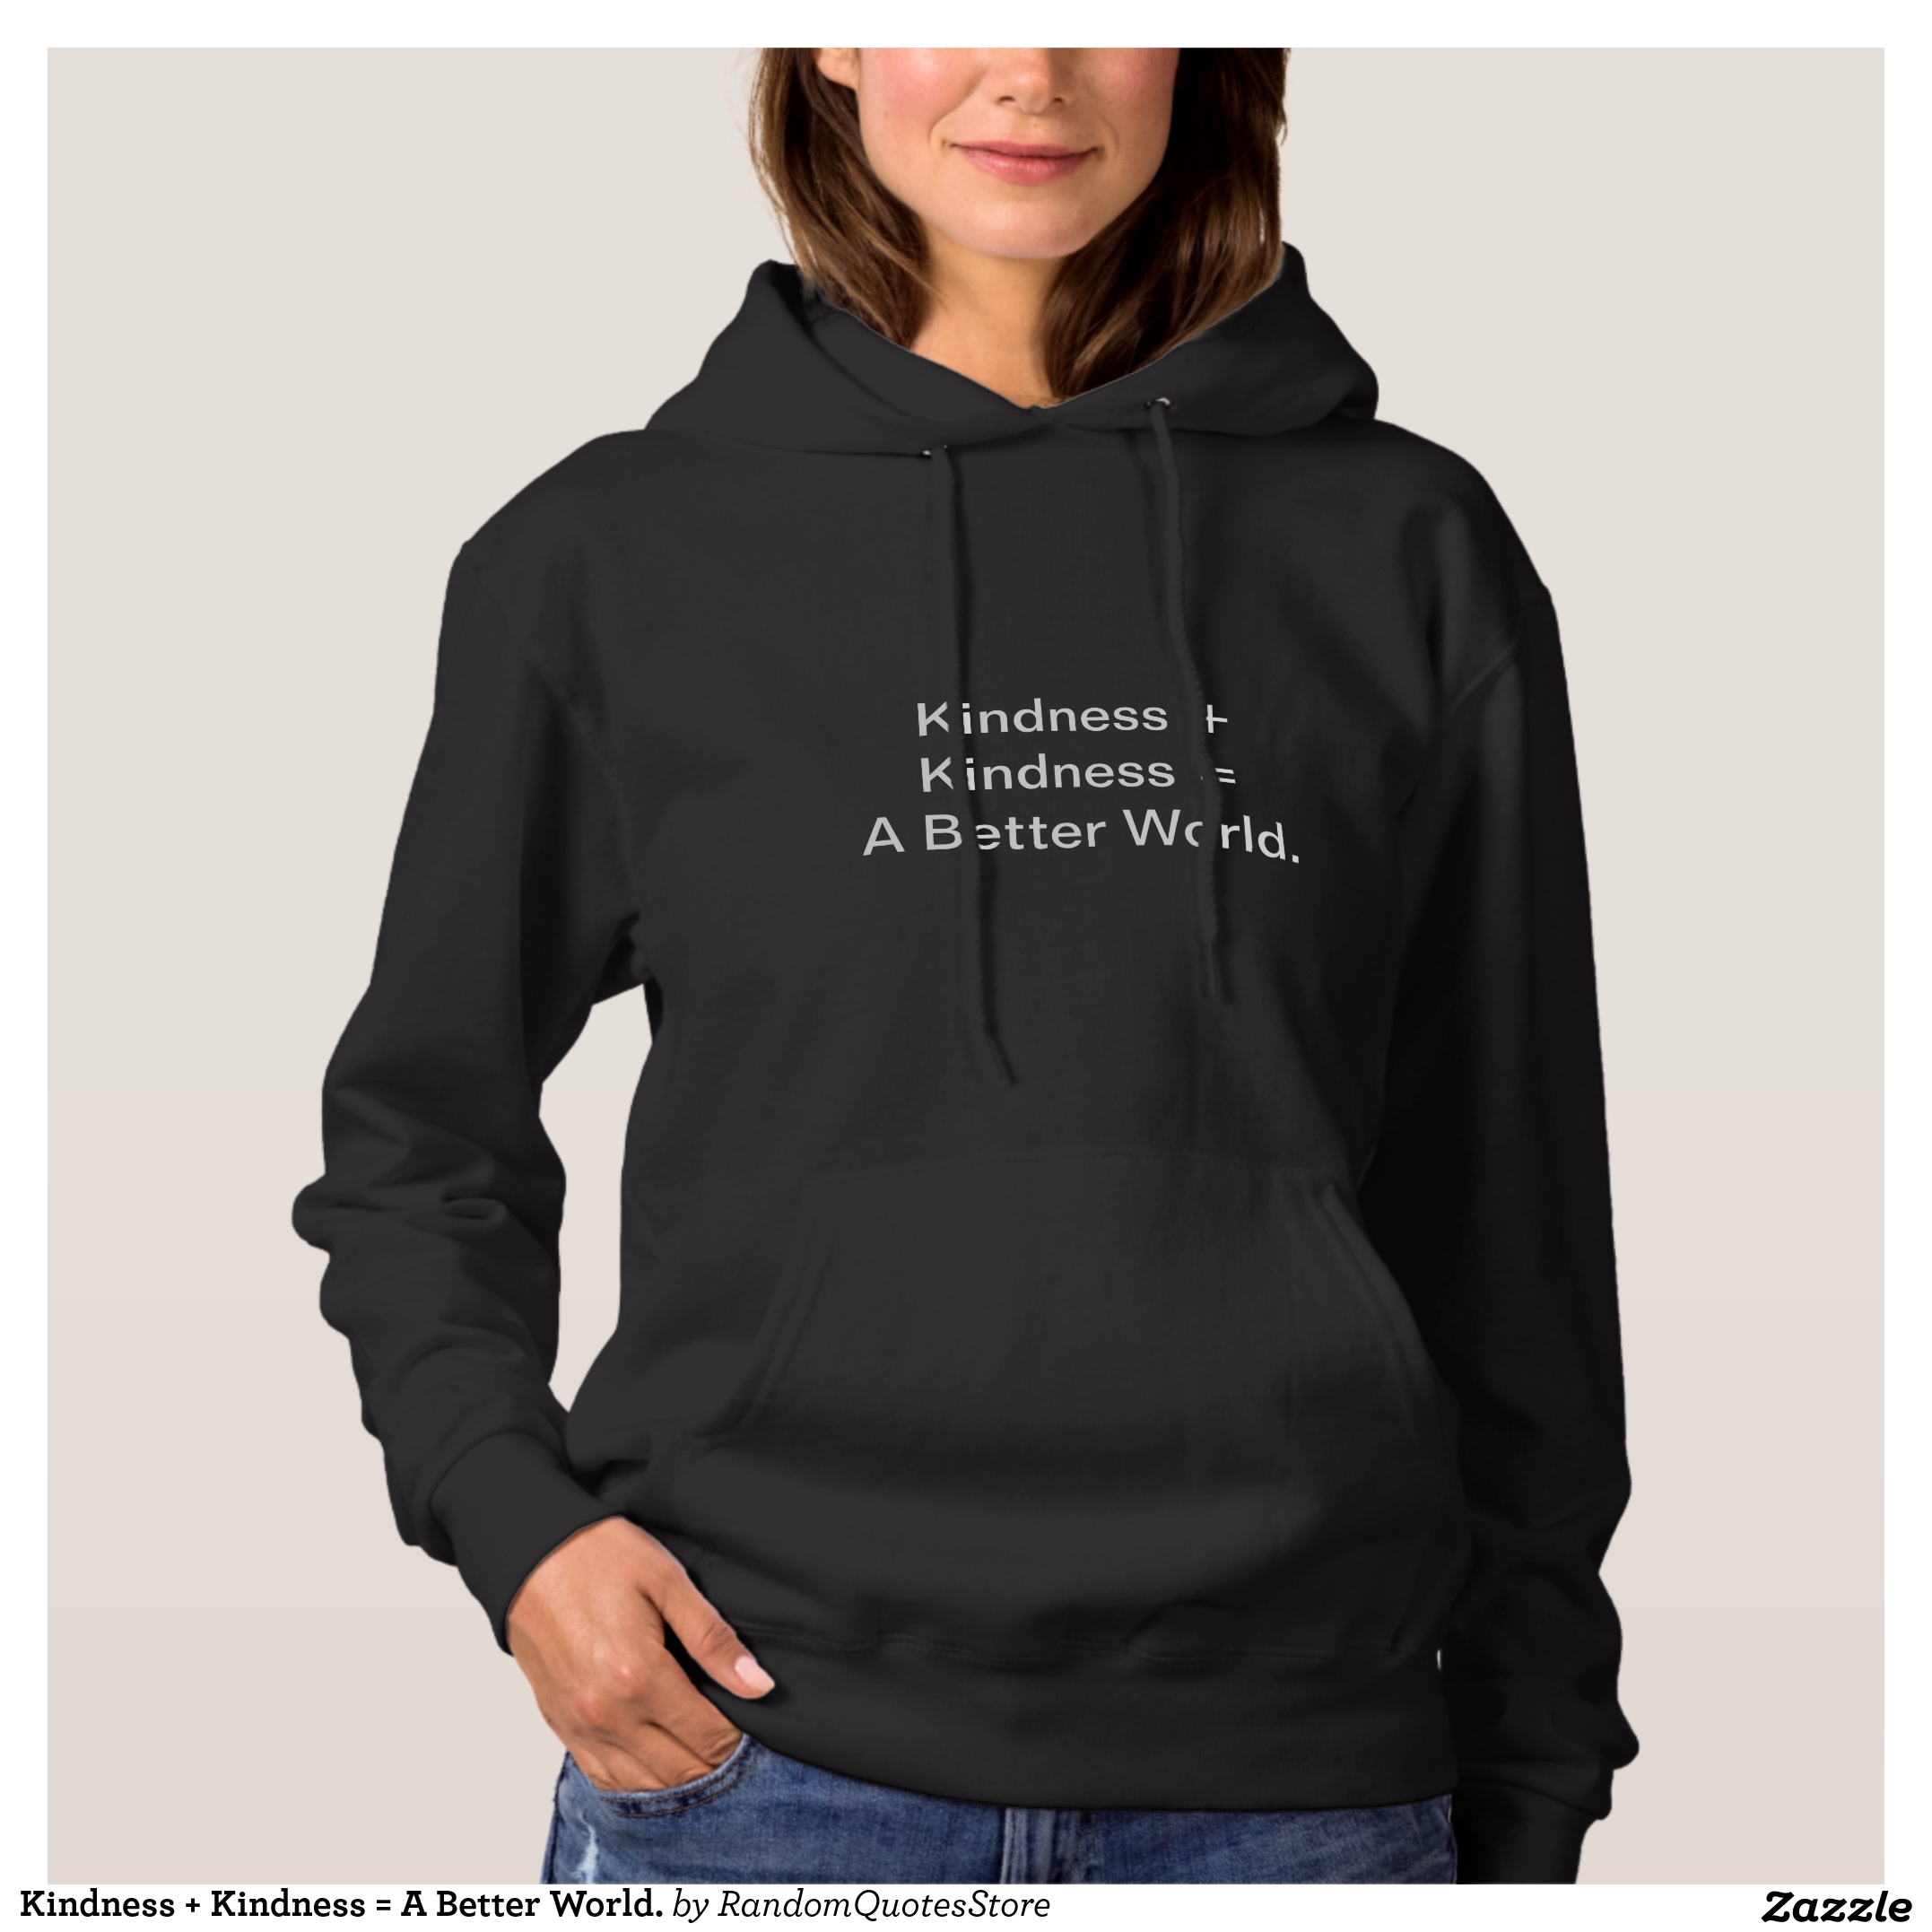 warm womens outdoor hoodies creative fashion designs bargain gift ideas and luxury shopping inspiration - Hoodie Design Ideas